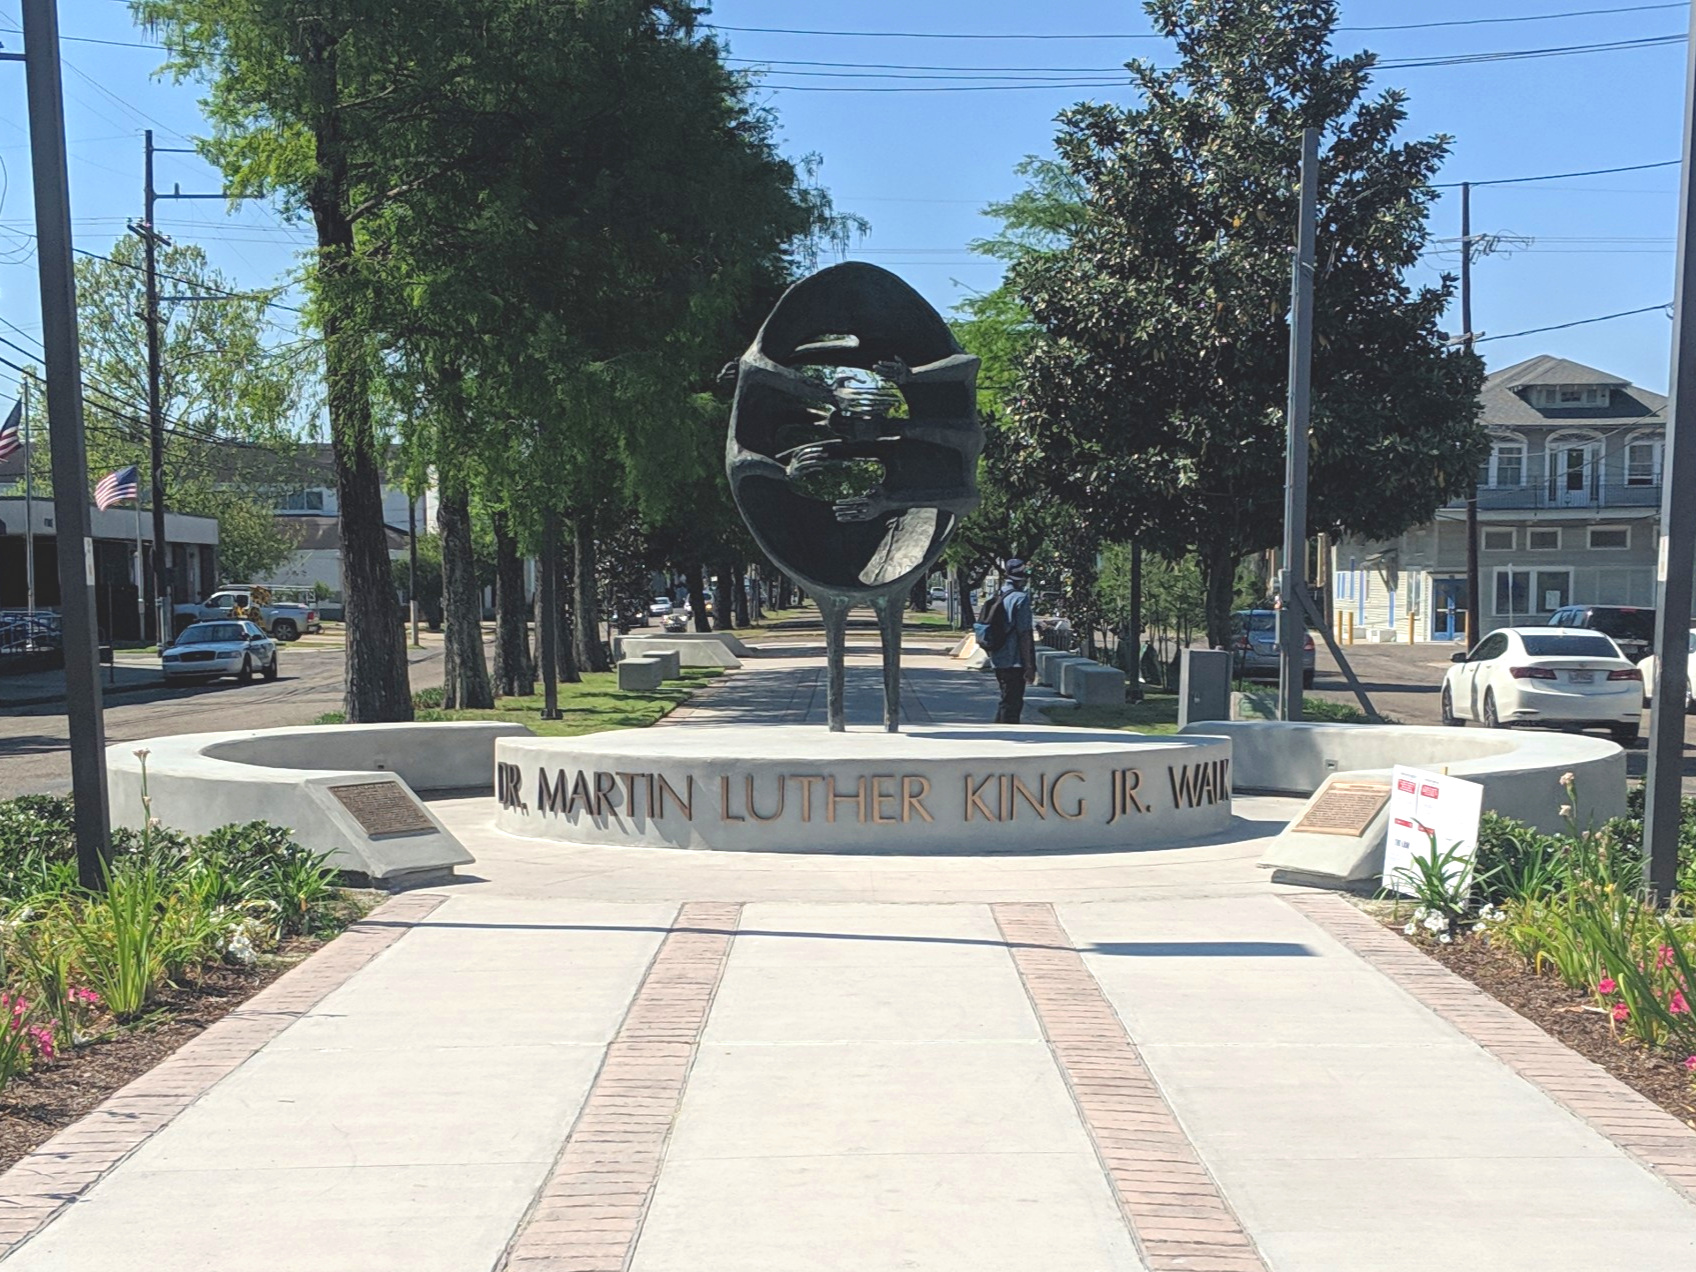 Improvements to the sculpture plaza at the intersection of Martin Luther King and Oretha Castle Haley boulevards are complete, and a re-dedication was held on Friday April 12, 2019   More